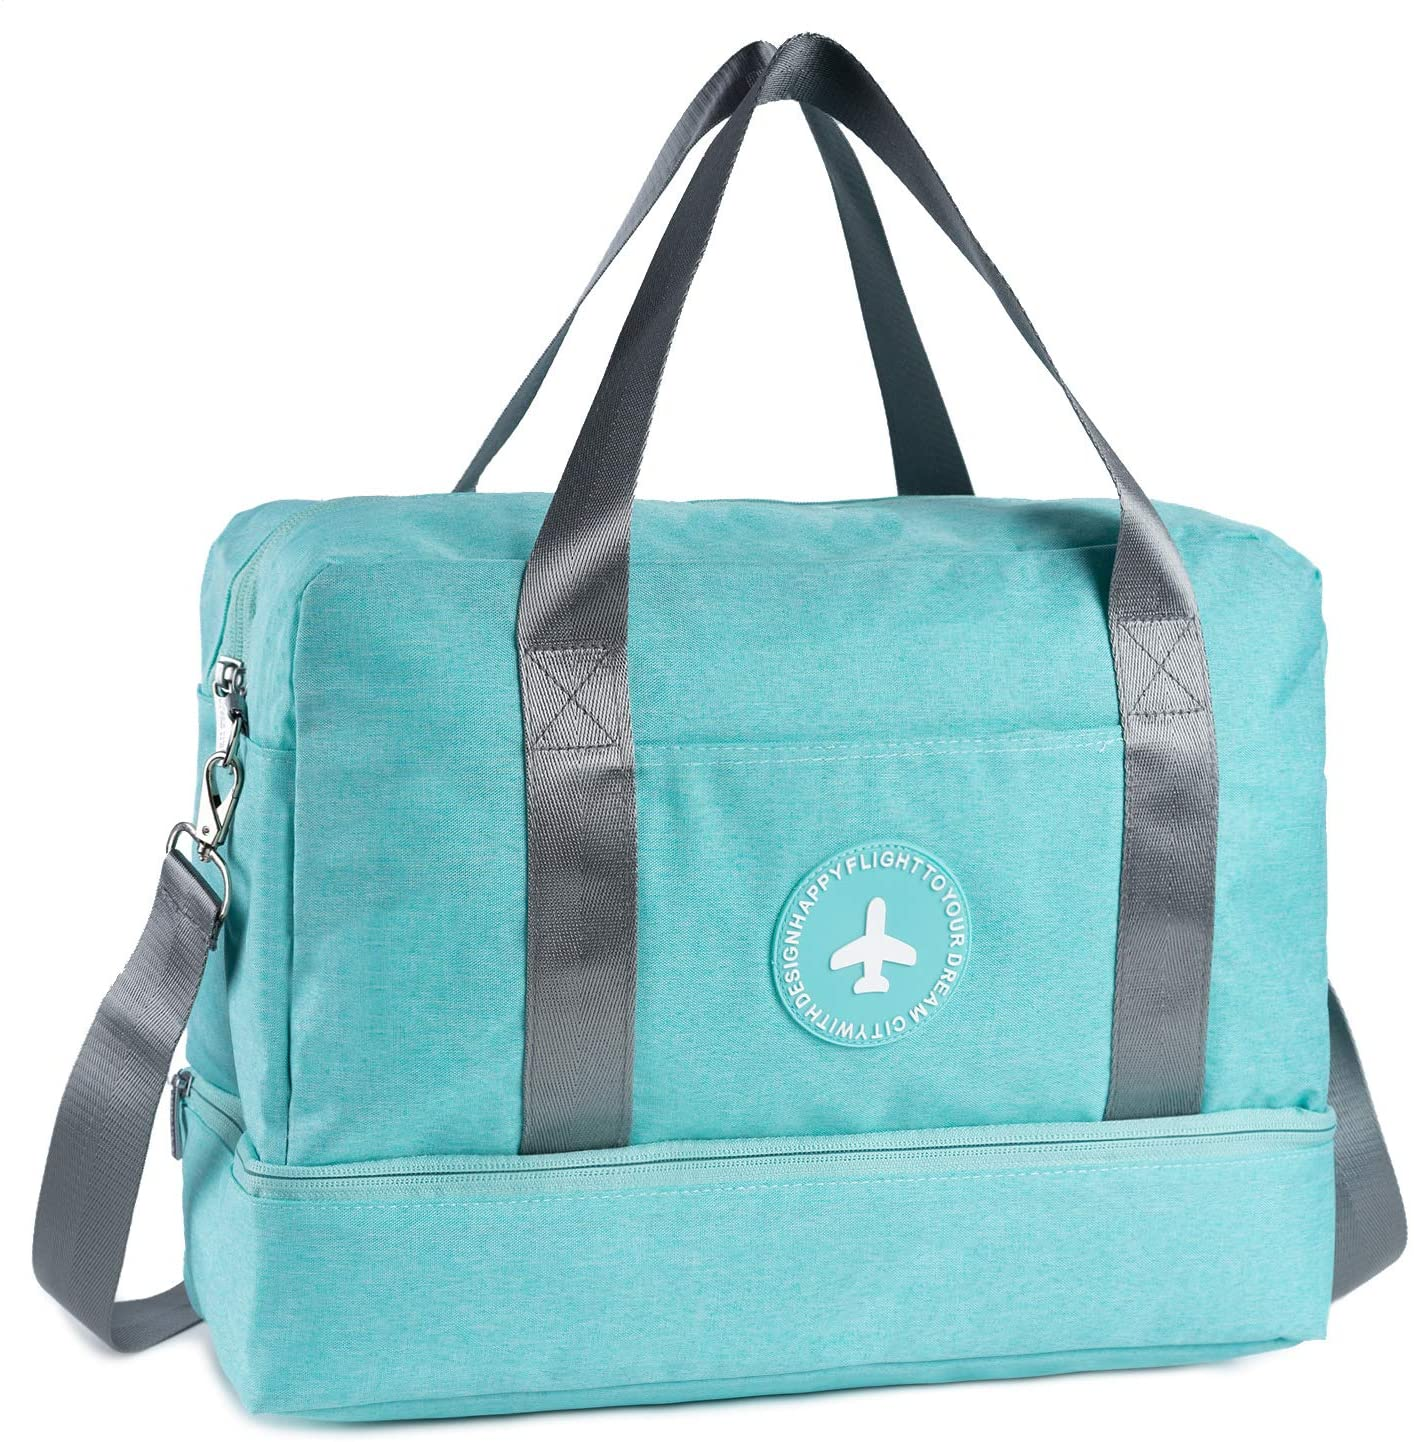 RoLekim Gym Totes Bag Gym Bag For Men and Women with Shoes Compartment Beach Bag Dry Wet Depart Swim Waterproof (Green 2way)